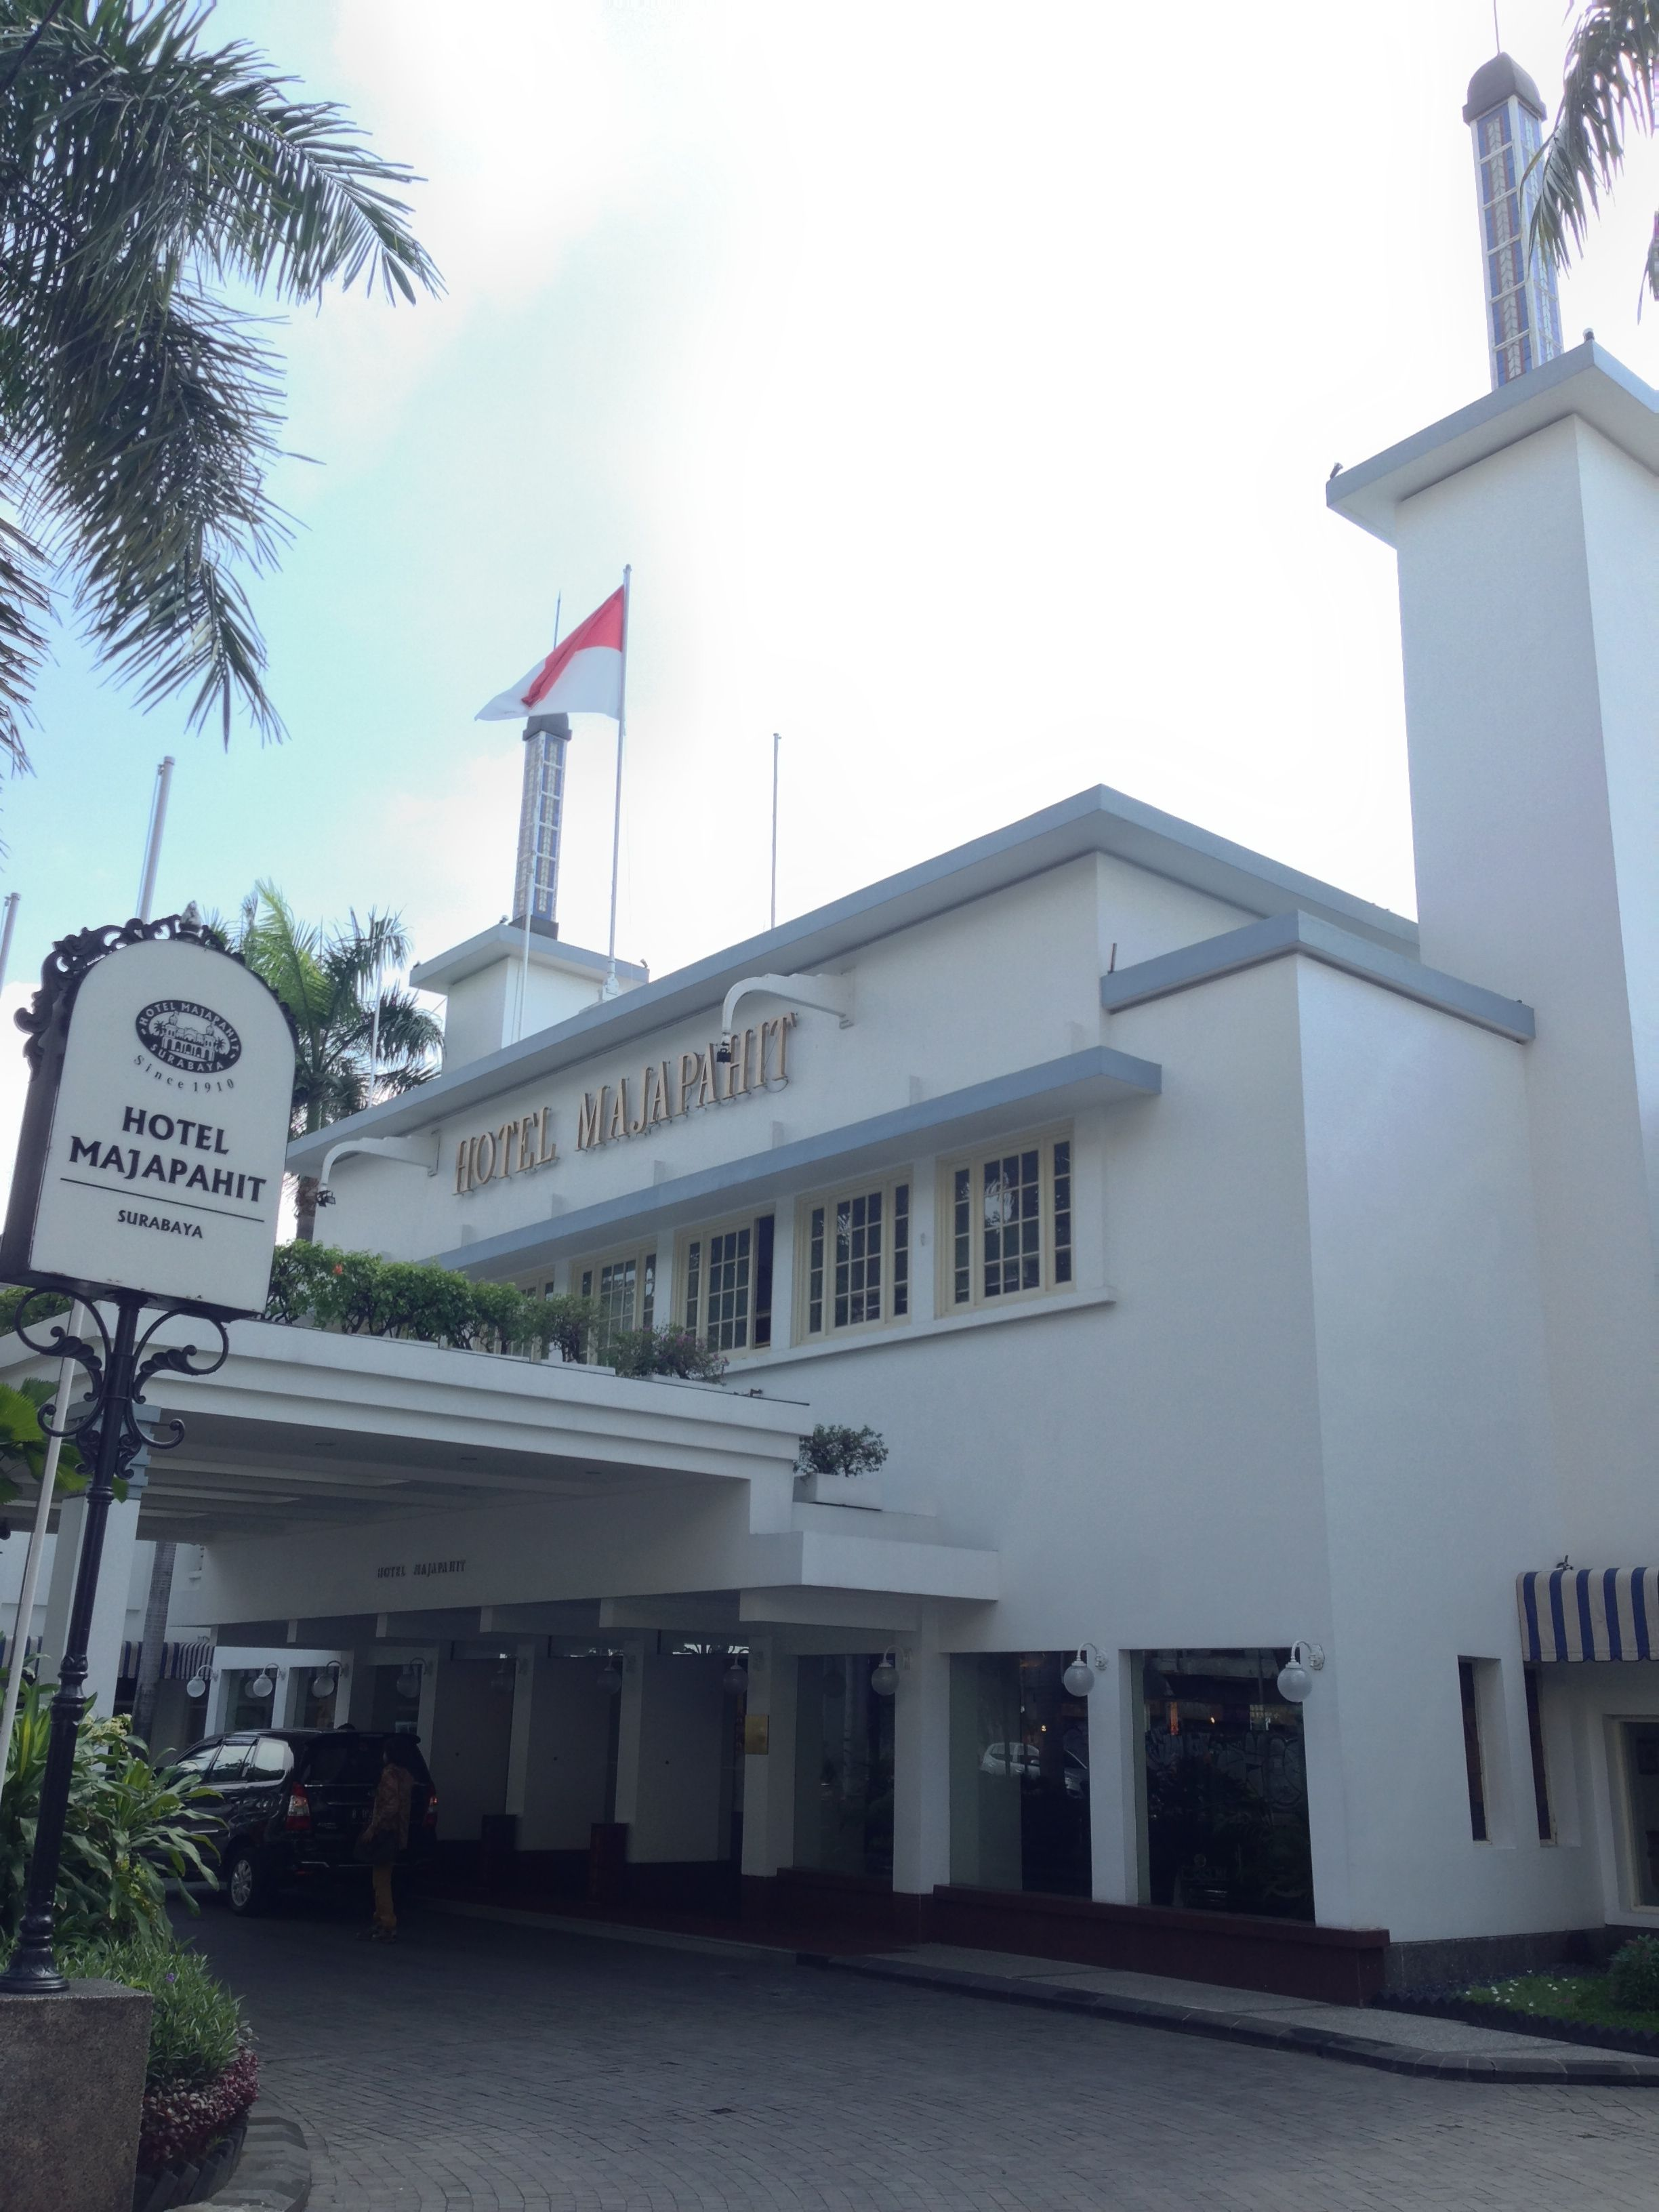 Hotel Majapahit Surabaya The Hotel Was The Site Of The Famous